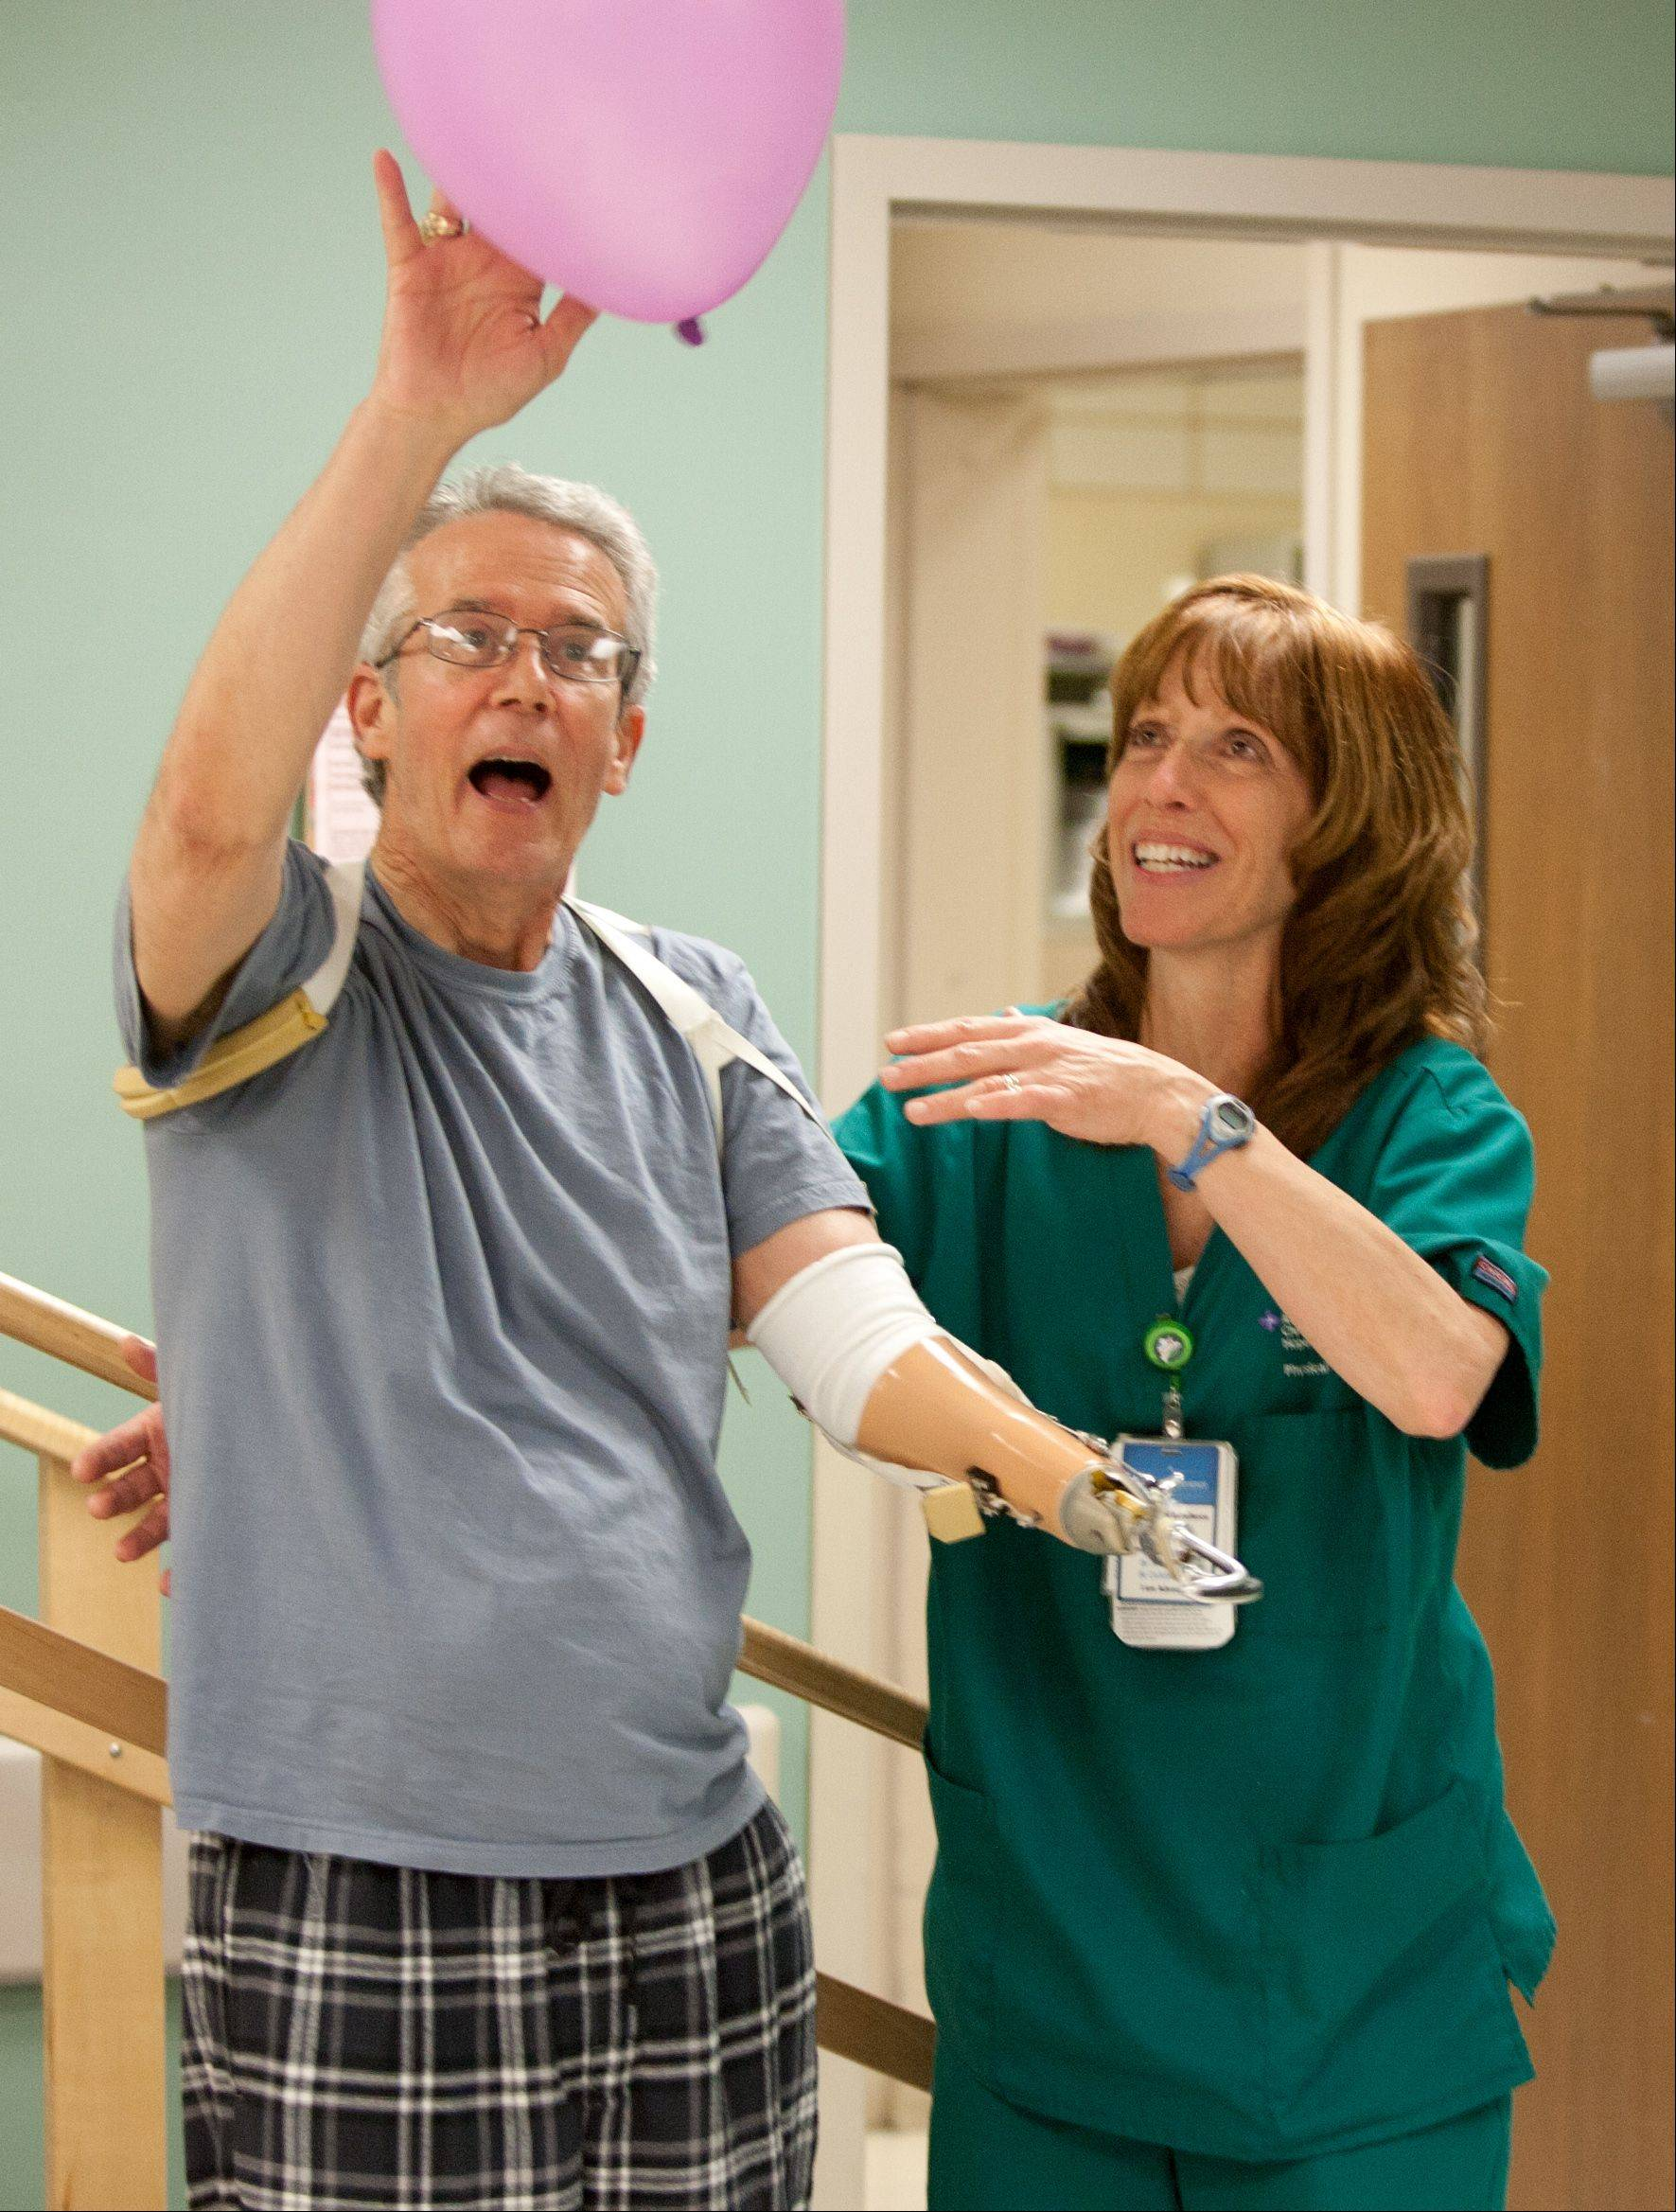 Working with physical therapy assistant Kathleen Dub during rehab at the Advocate Christ Medical Center in Oak Lawn, Kent Carson learned how to use the hook at the end of his left arm to grab objects. Now Carson hopes to persuade his insurance company to pay for a bionic hand with movable fingers.